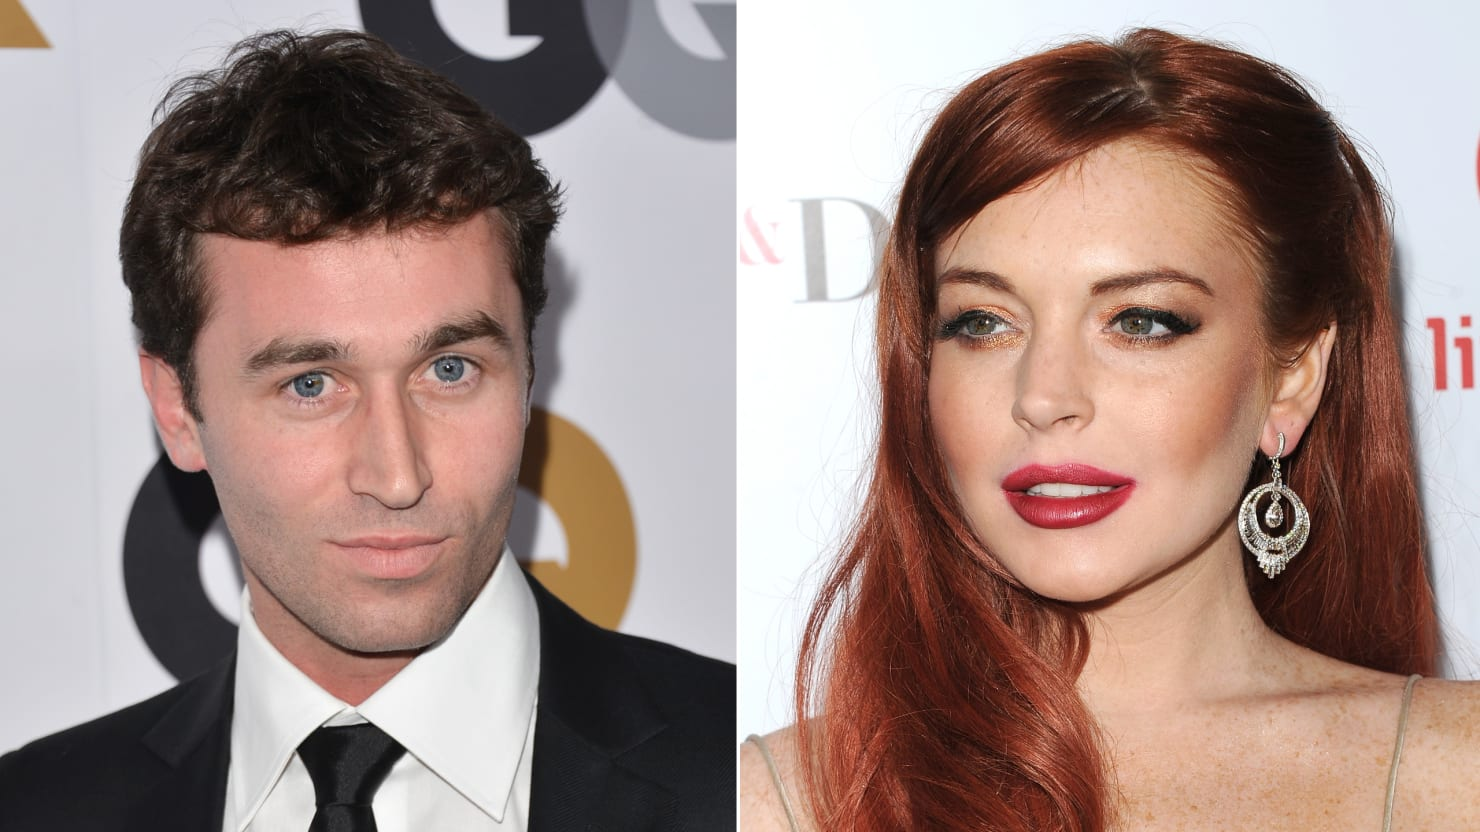 Does james deen do gay porn